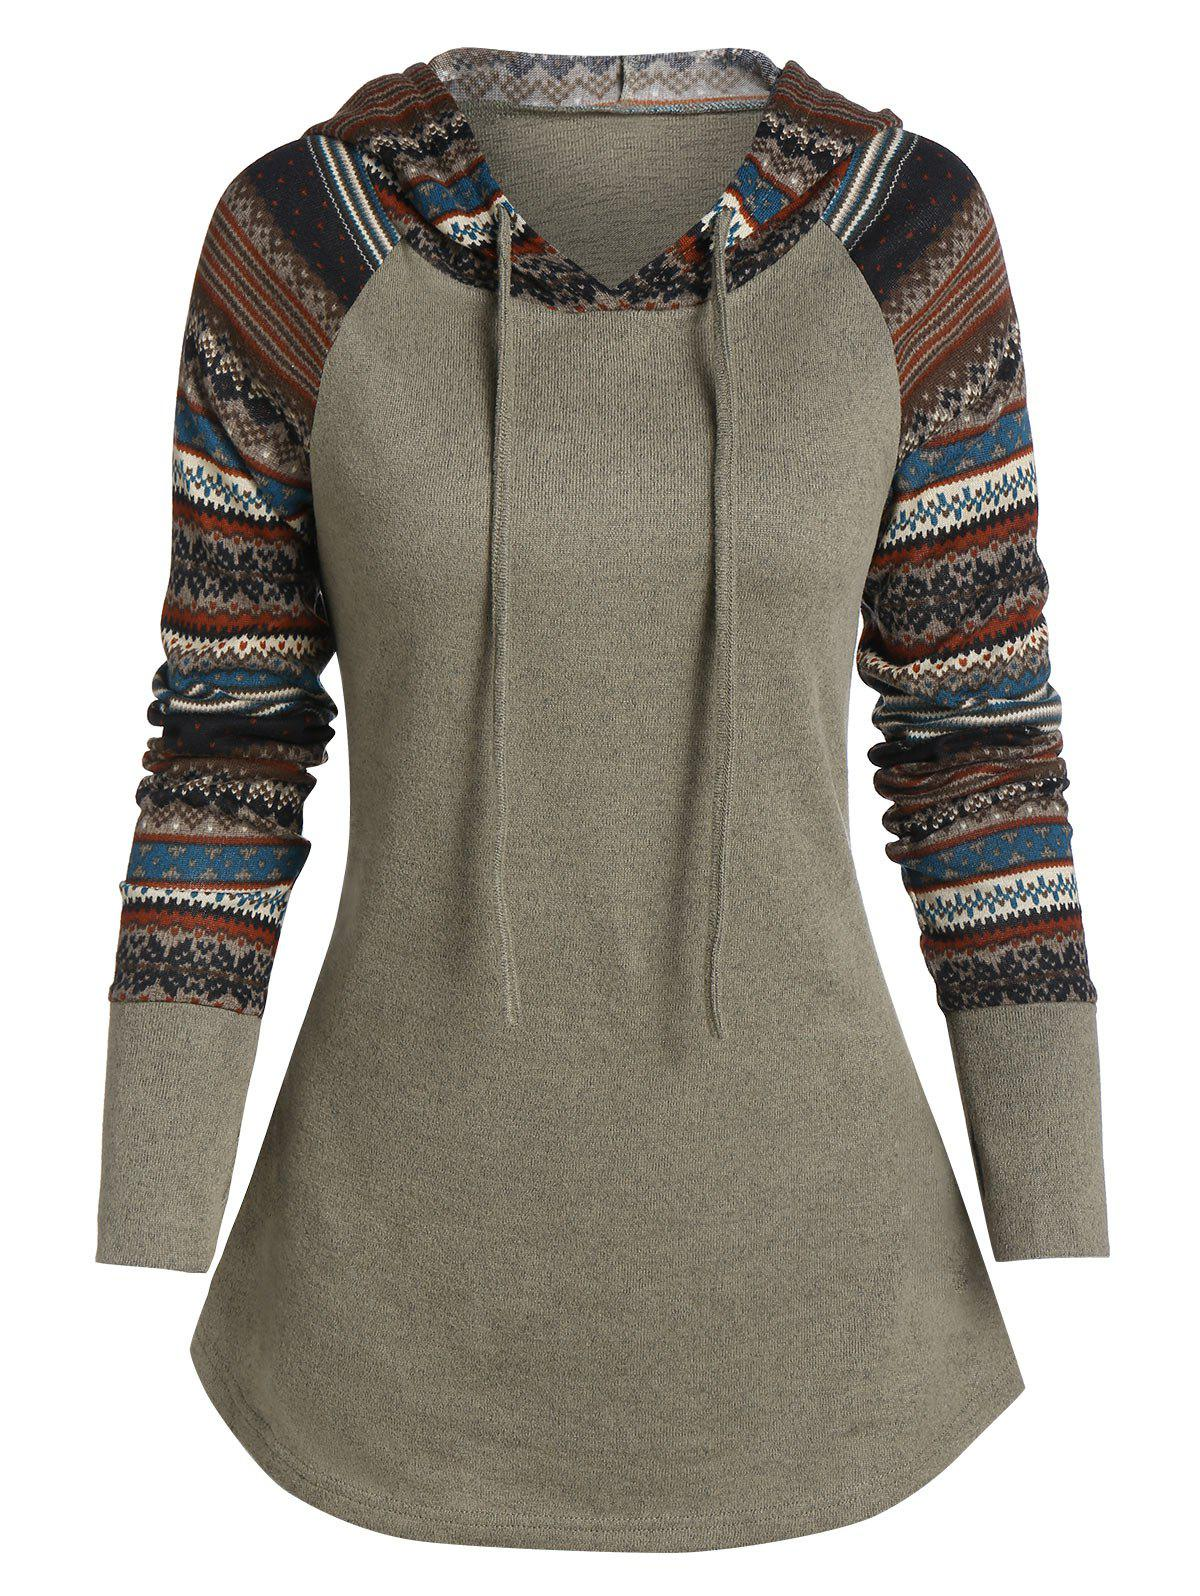 Raglan manches imprimé tribal Sweat à capuche